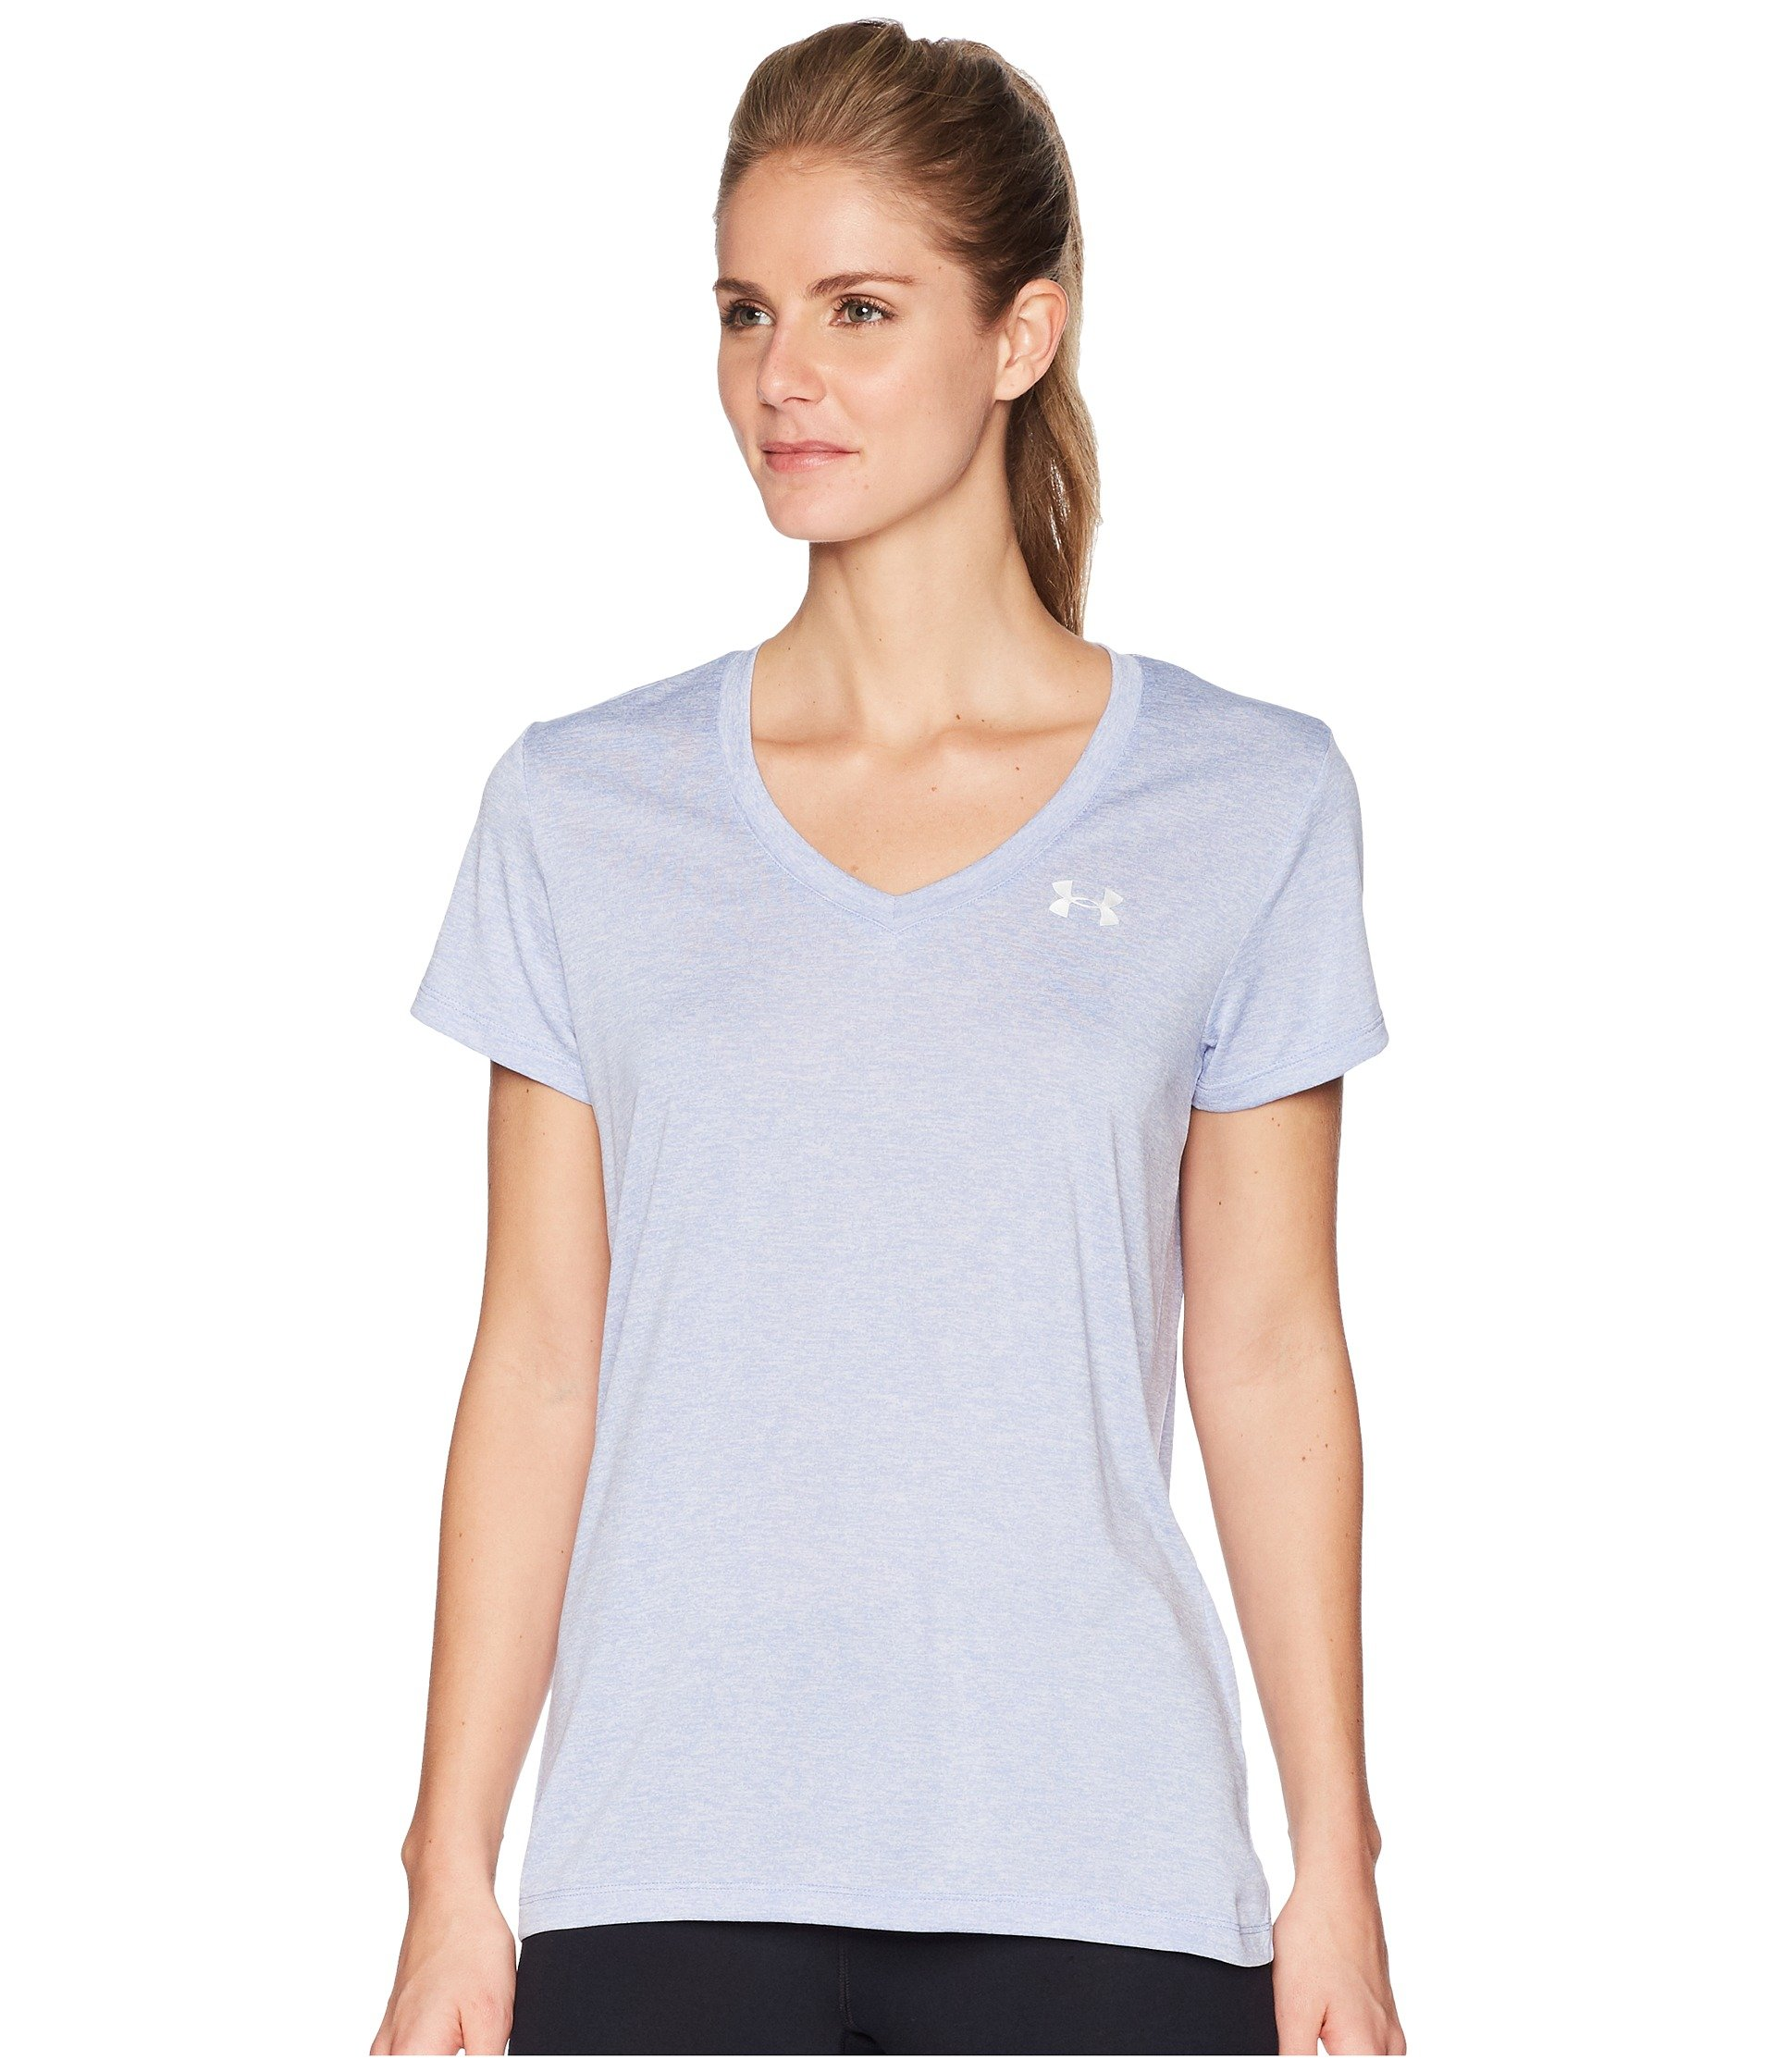 Under Armour Women's UA Tech¿ Twist V-Neck Talc Blue/Metallic Silver Small by Under Armour (Image #3)